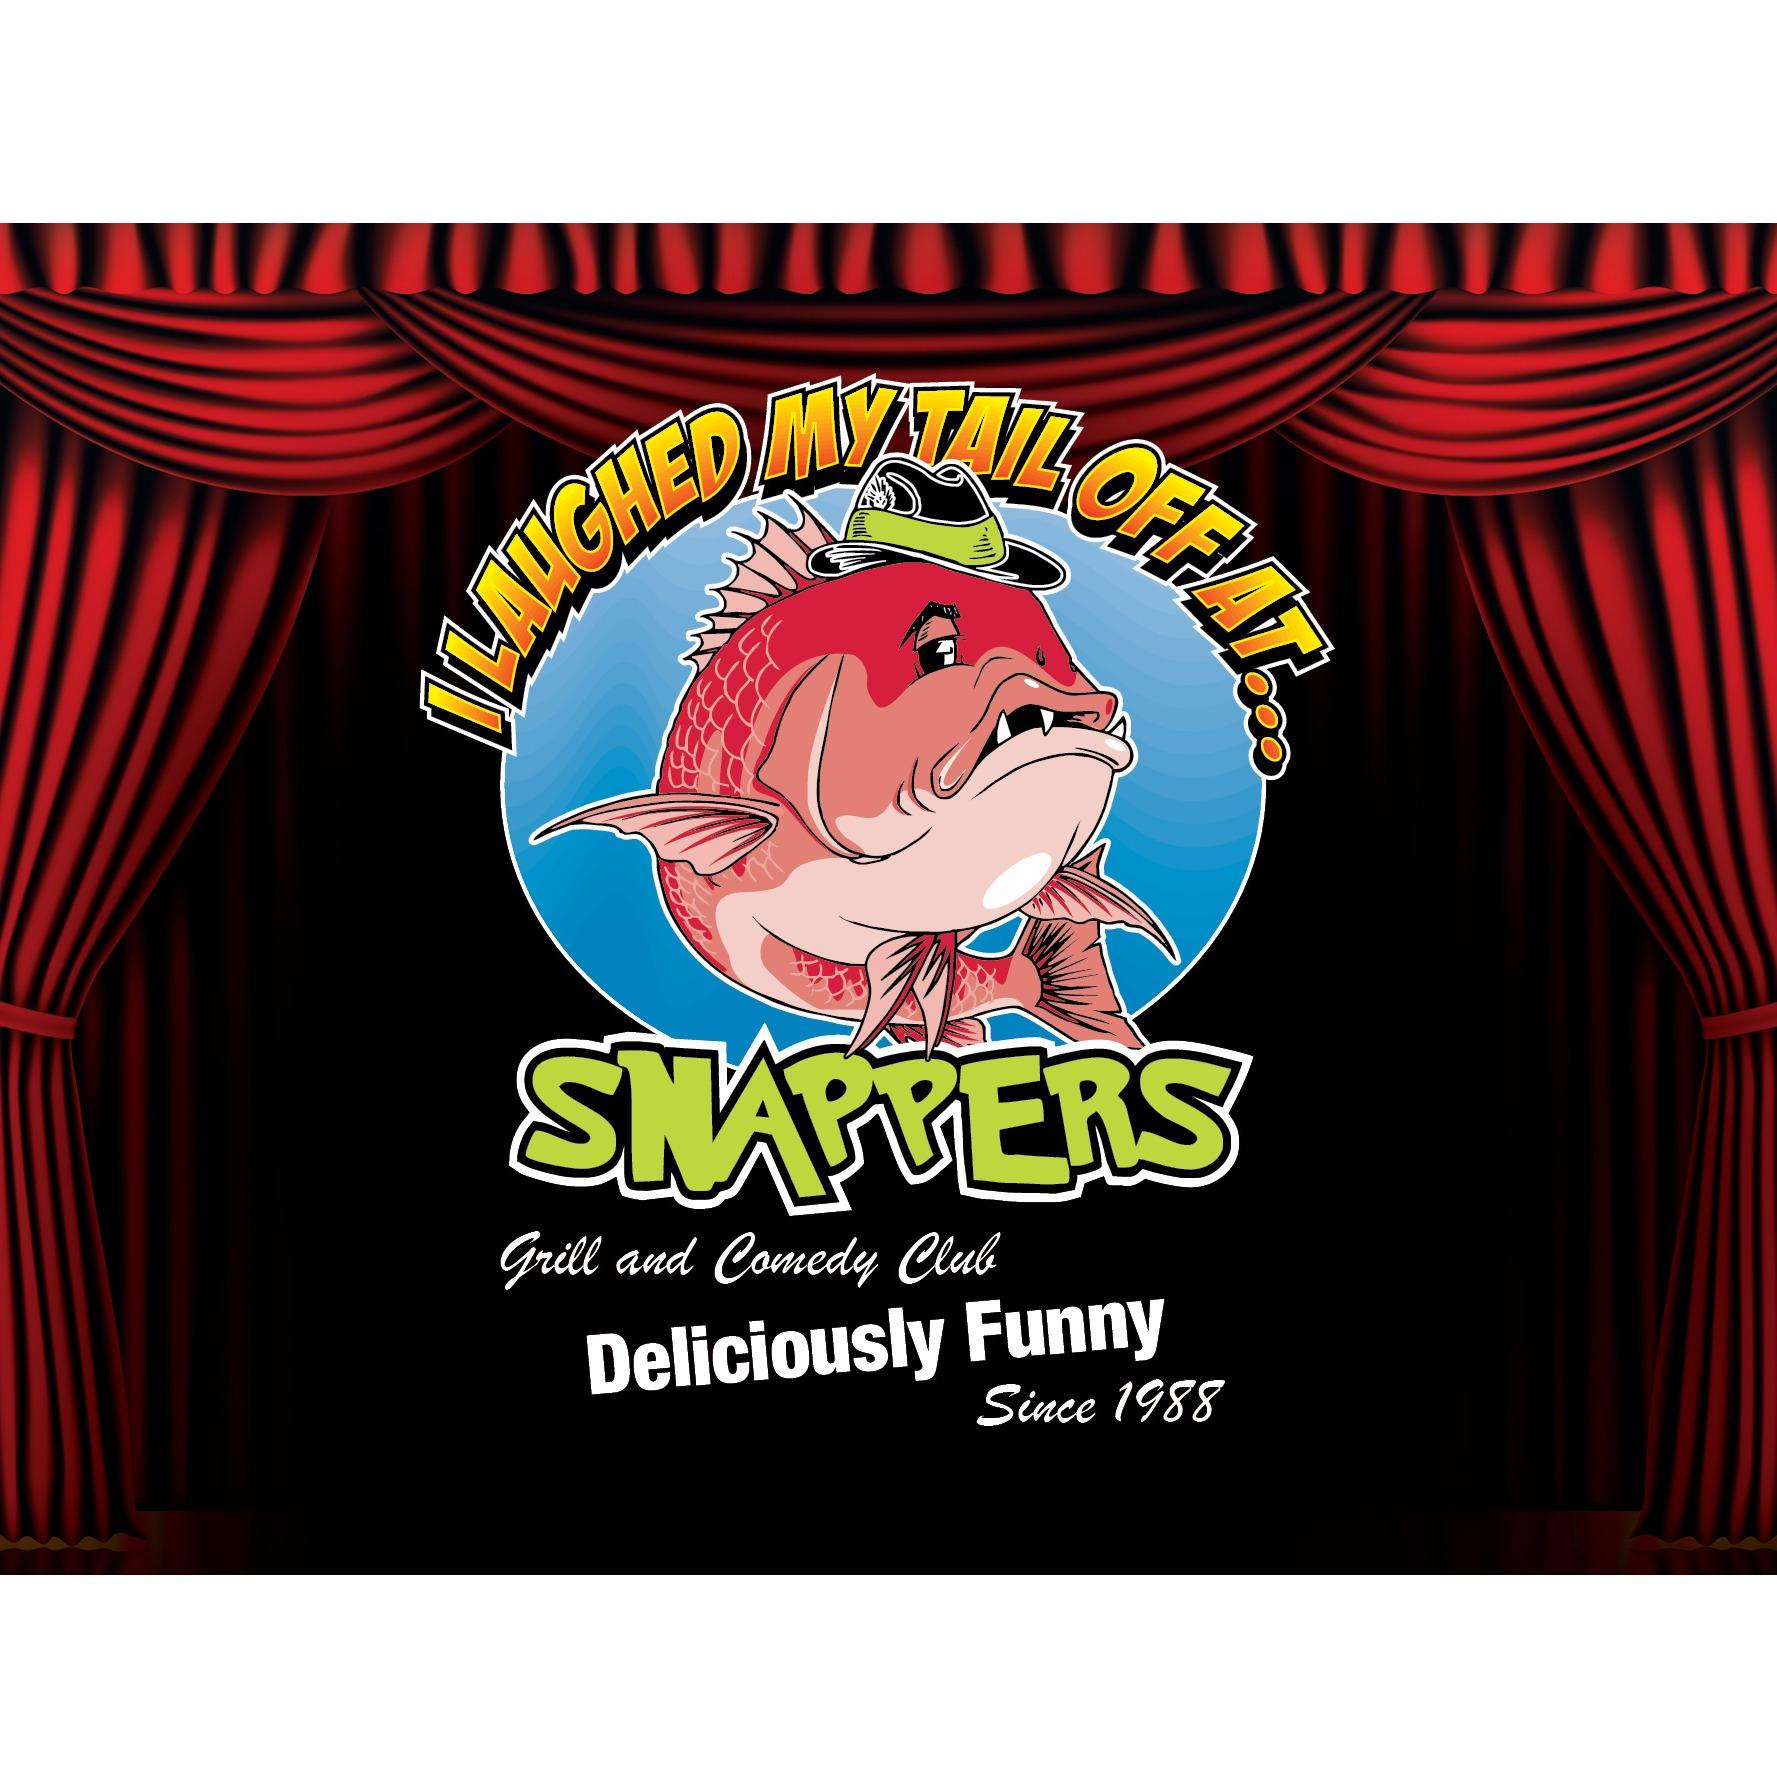 Snappers Grill & Comedy Club image 0